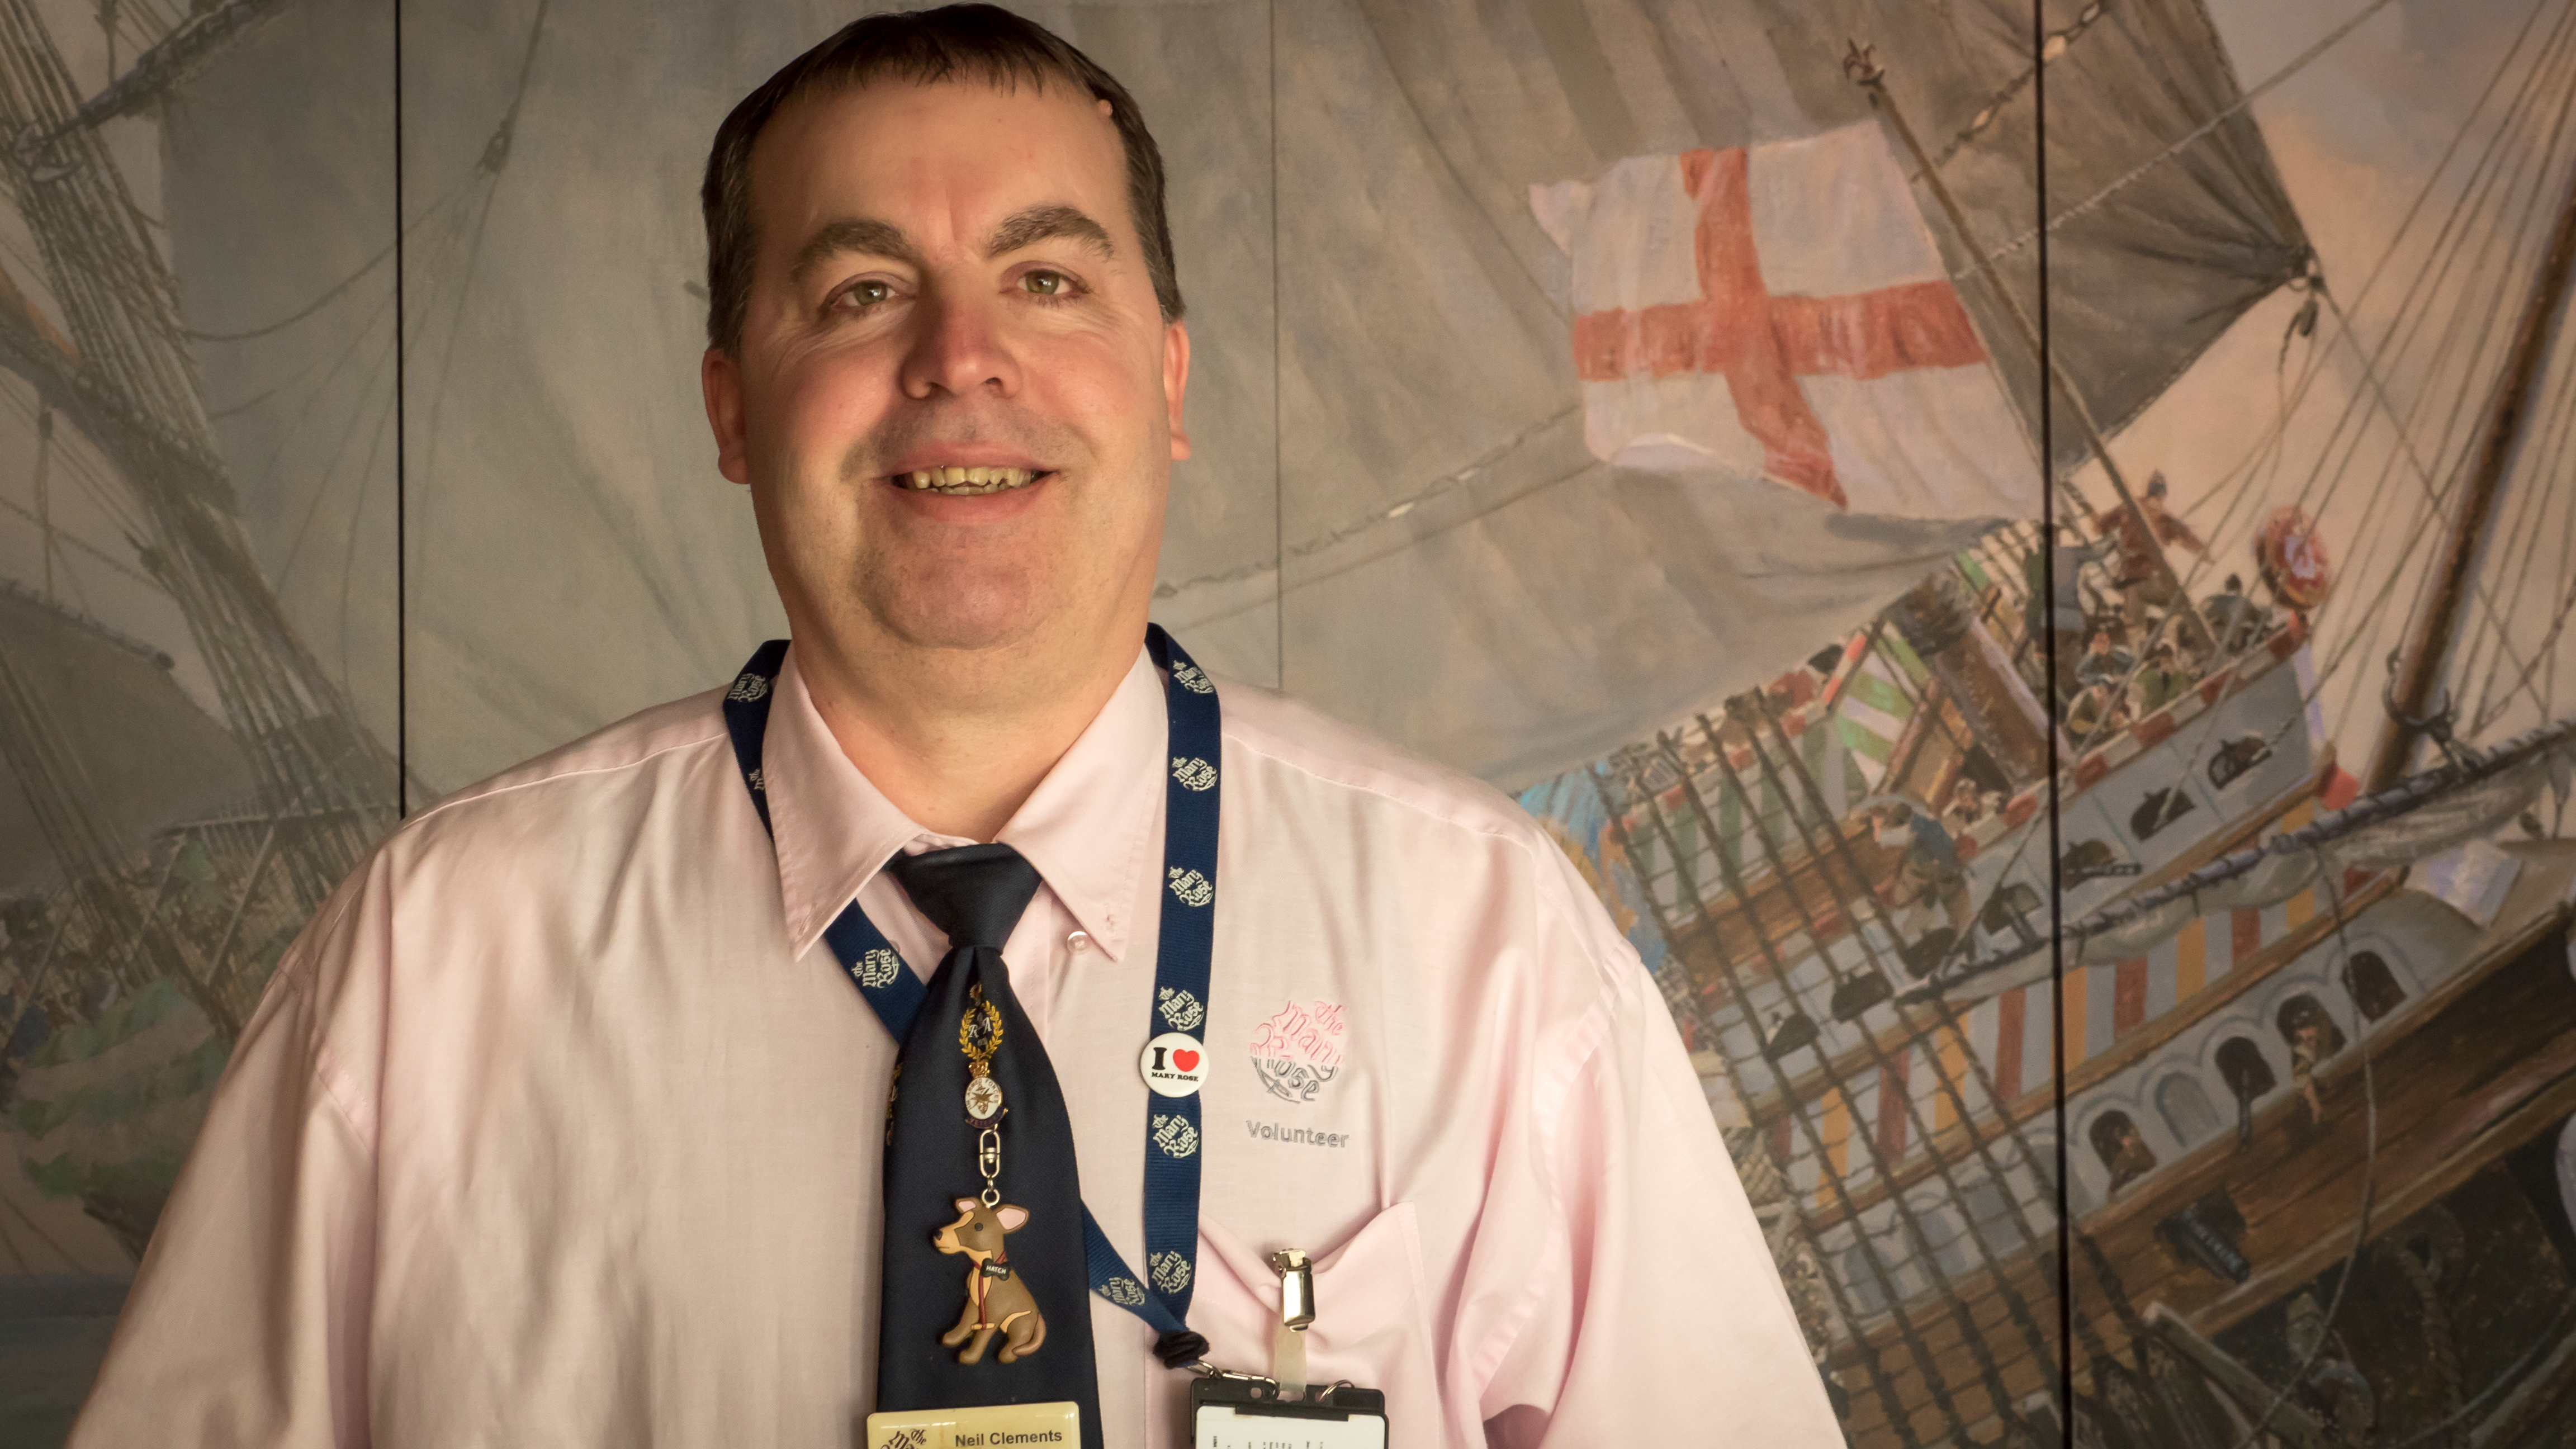 Neil Clements, Mary Rose Museum volunteer